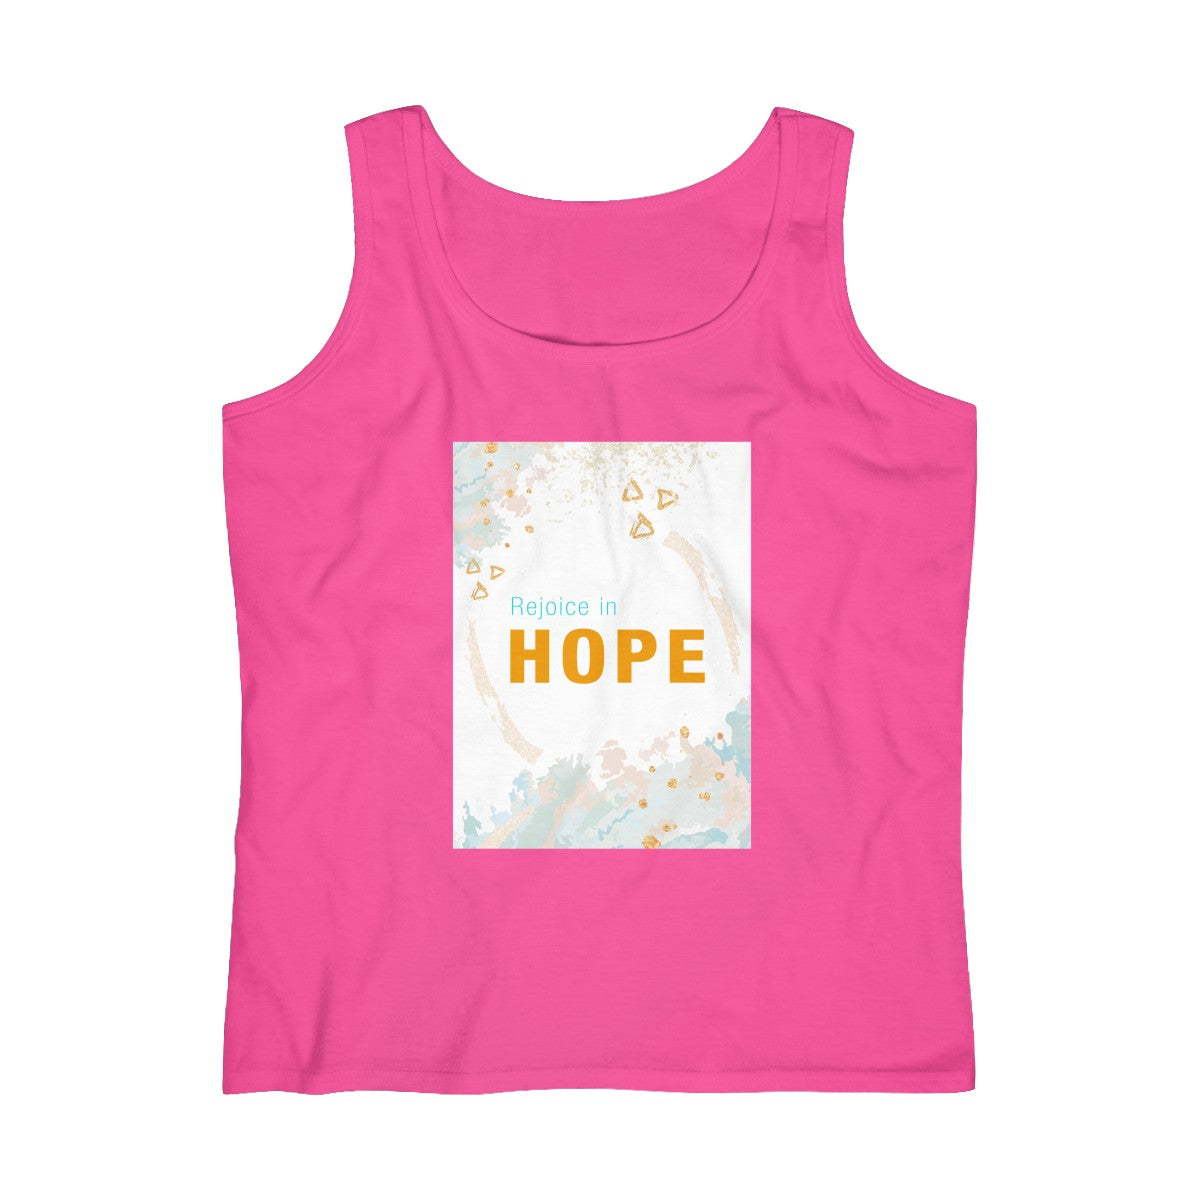 Rejoice in Hope Abstract Women's Lightweight Tank Top